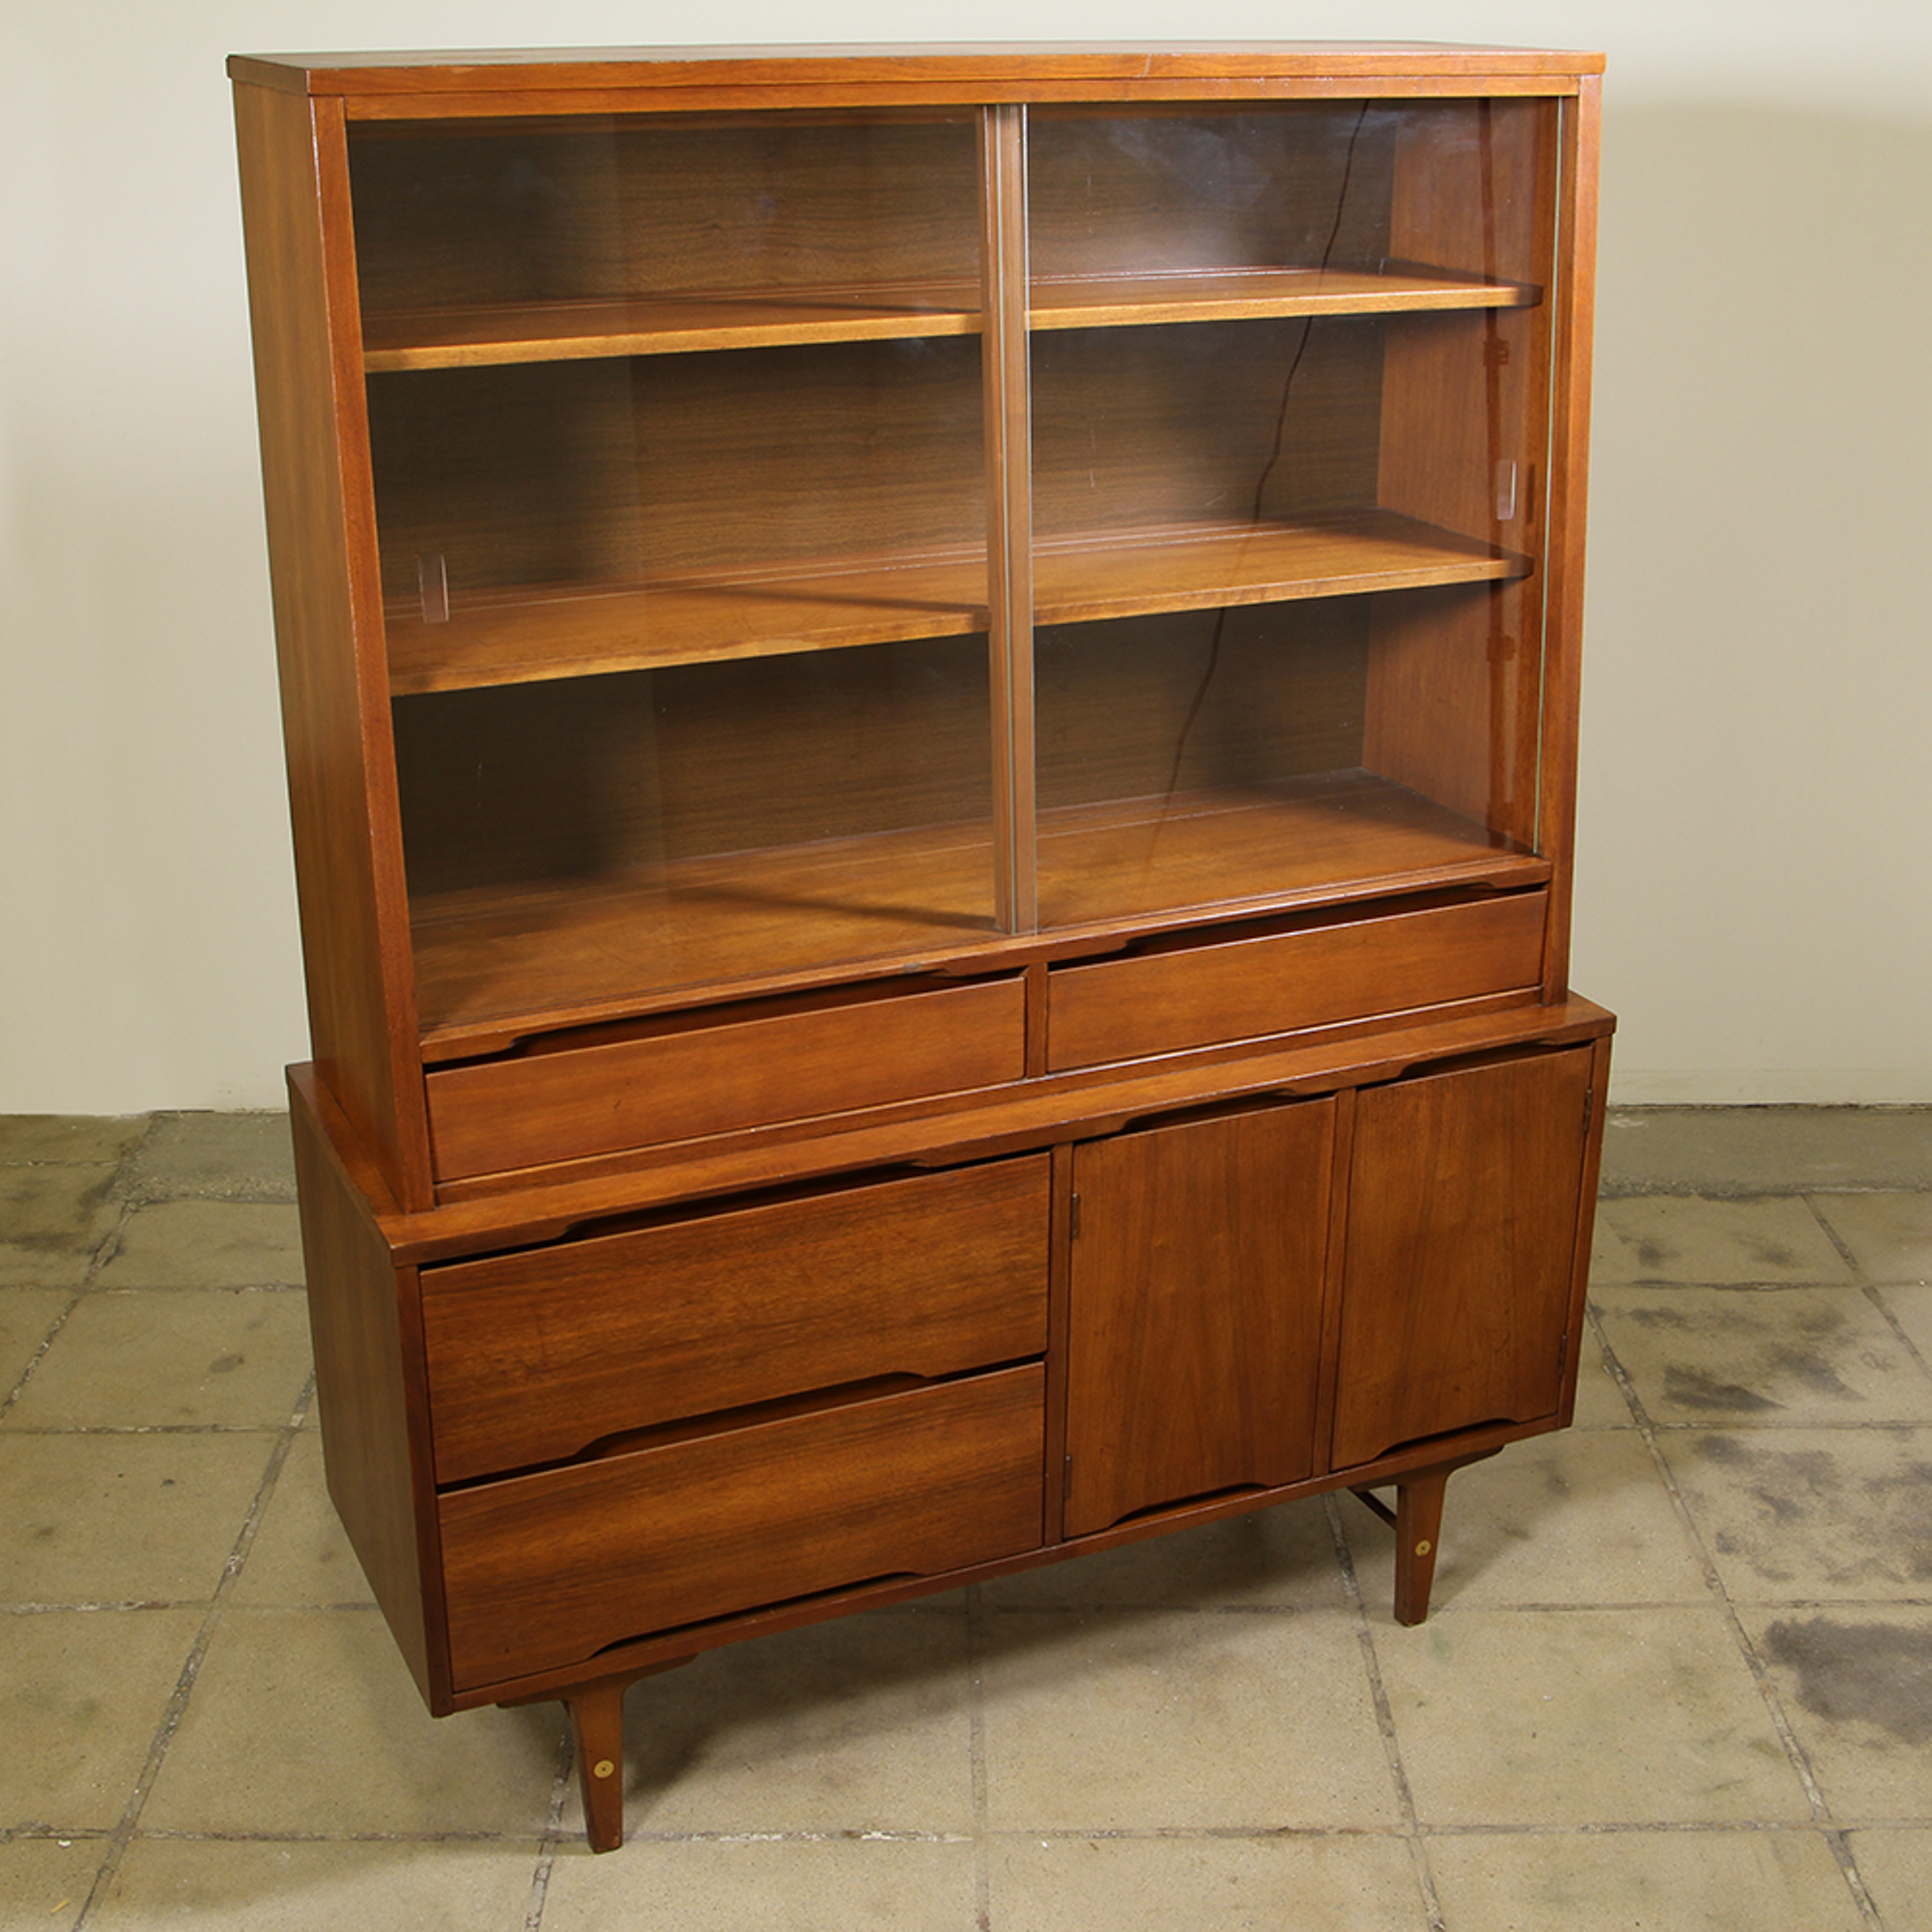 this mid century modern china cabinet is featured in a solid wood with gorgeous glossy teak